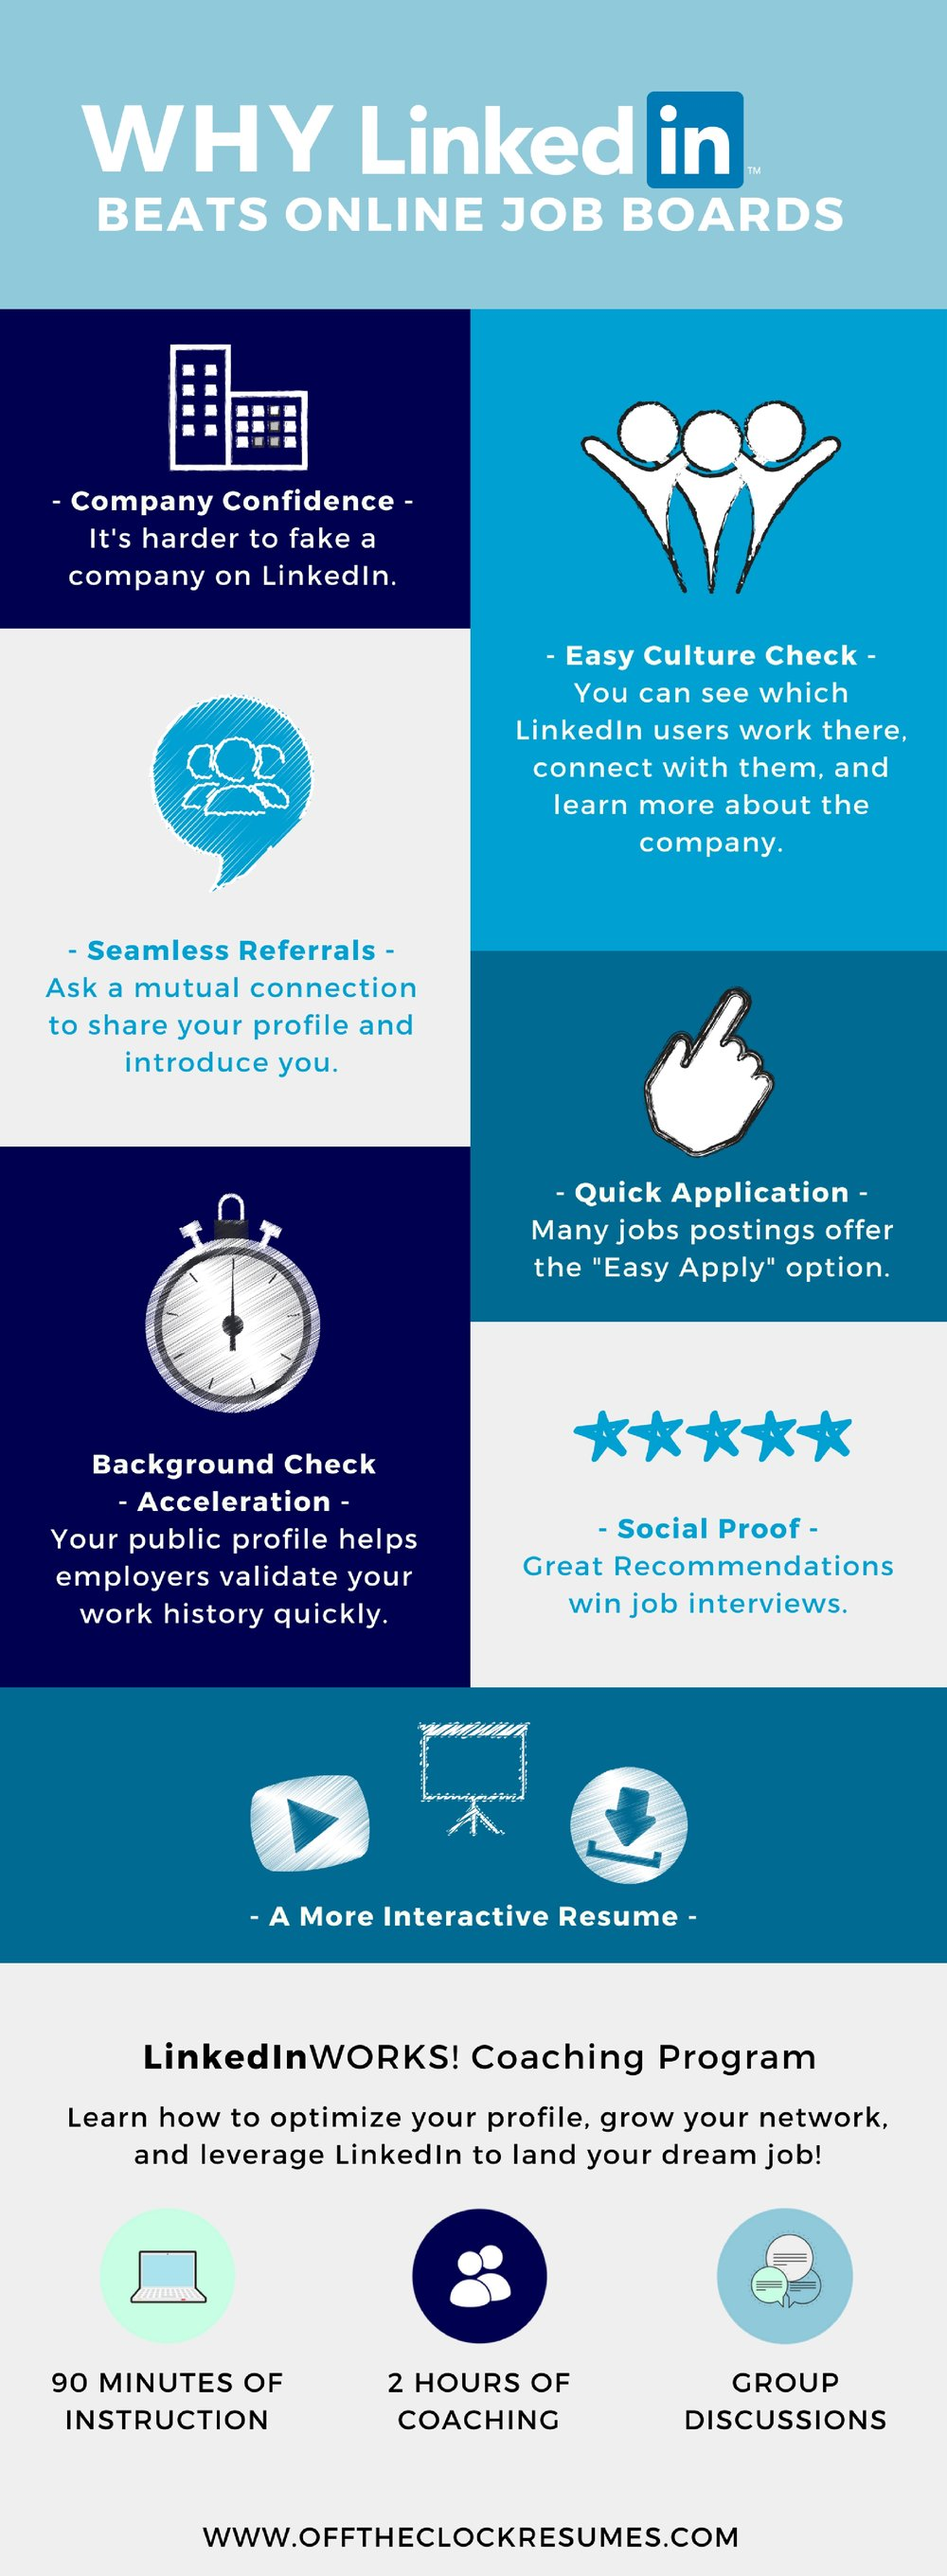 Why LinkedIn Beats Online Job Boards | Off The Clock Resumes